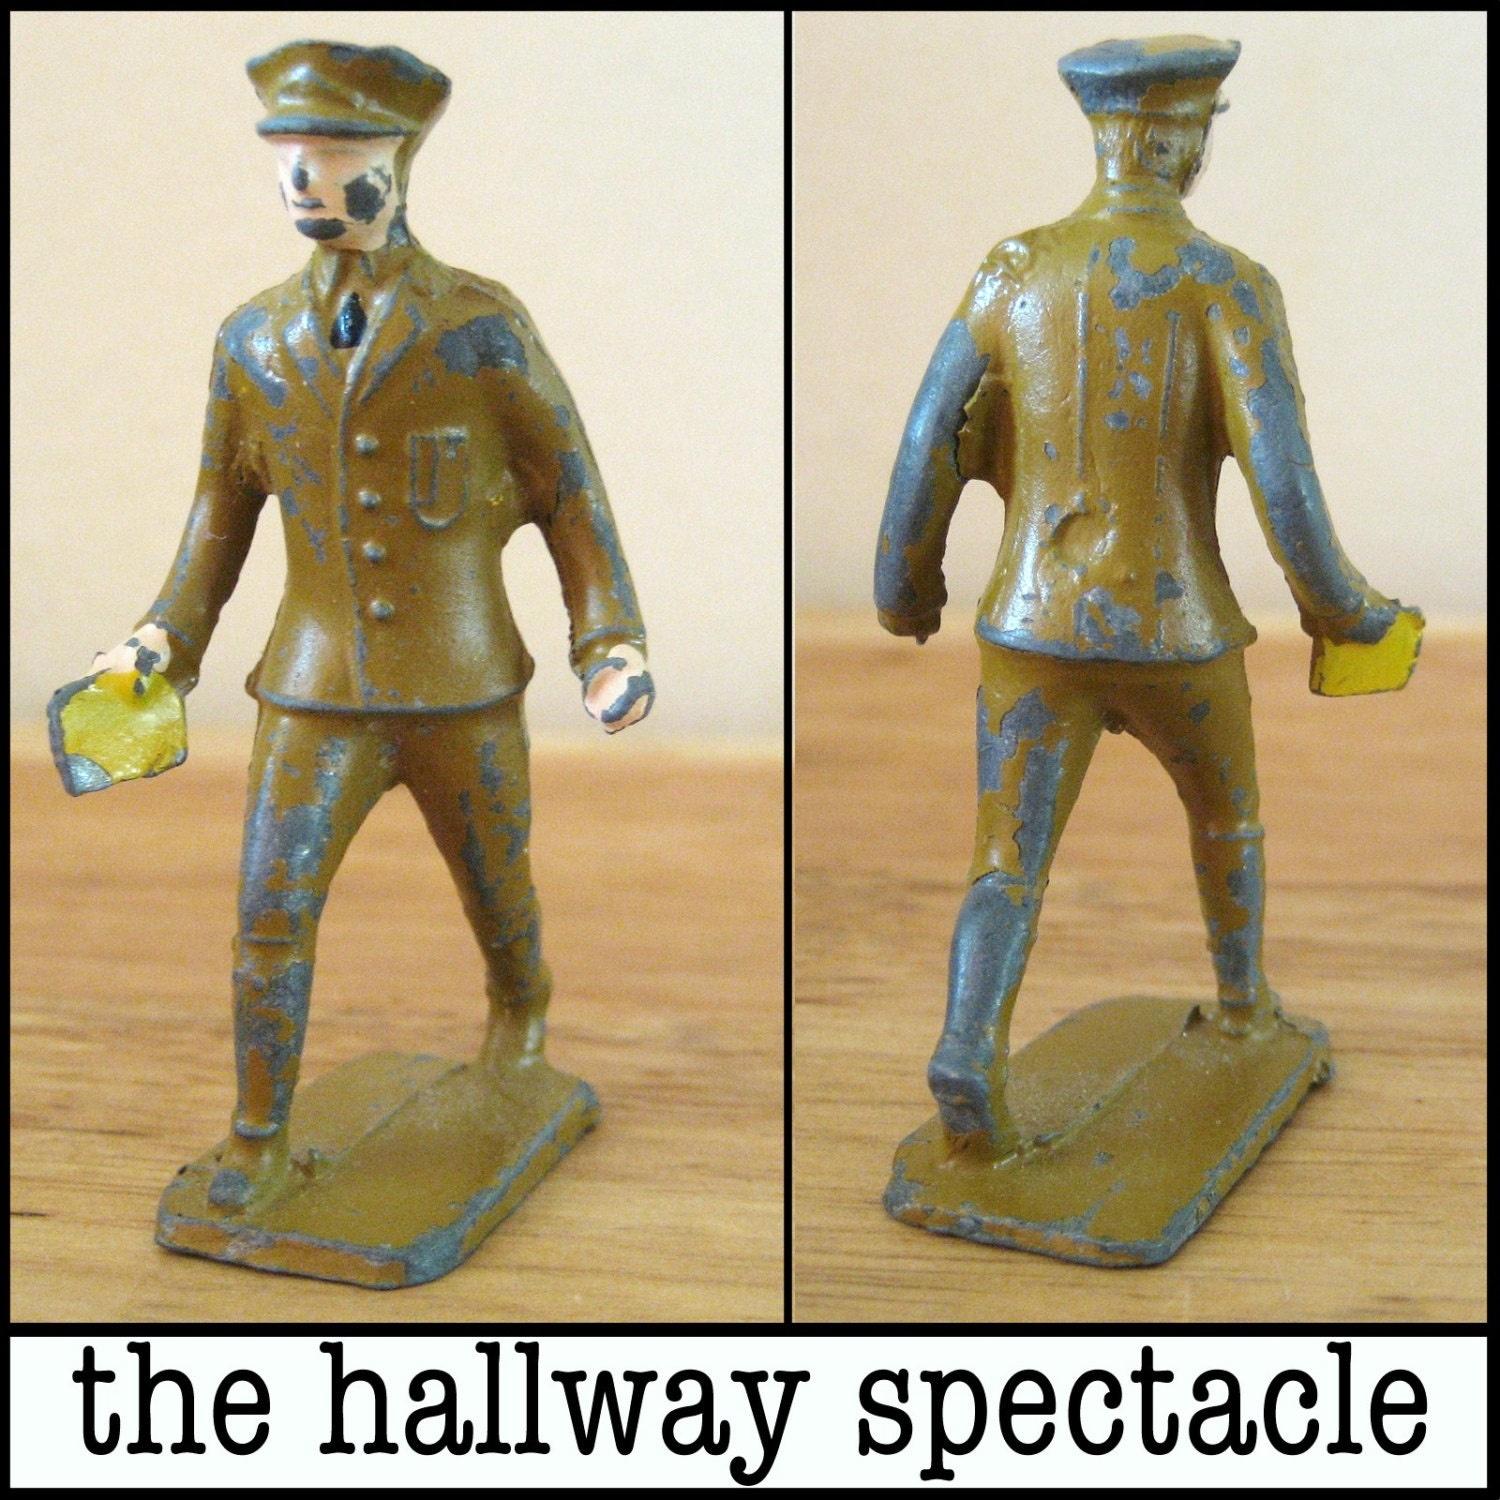 Vintage Lincoln Logs Military Man Lead Figurine Toy Figure Officer army american - TheHallwaySpectacle